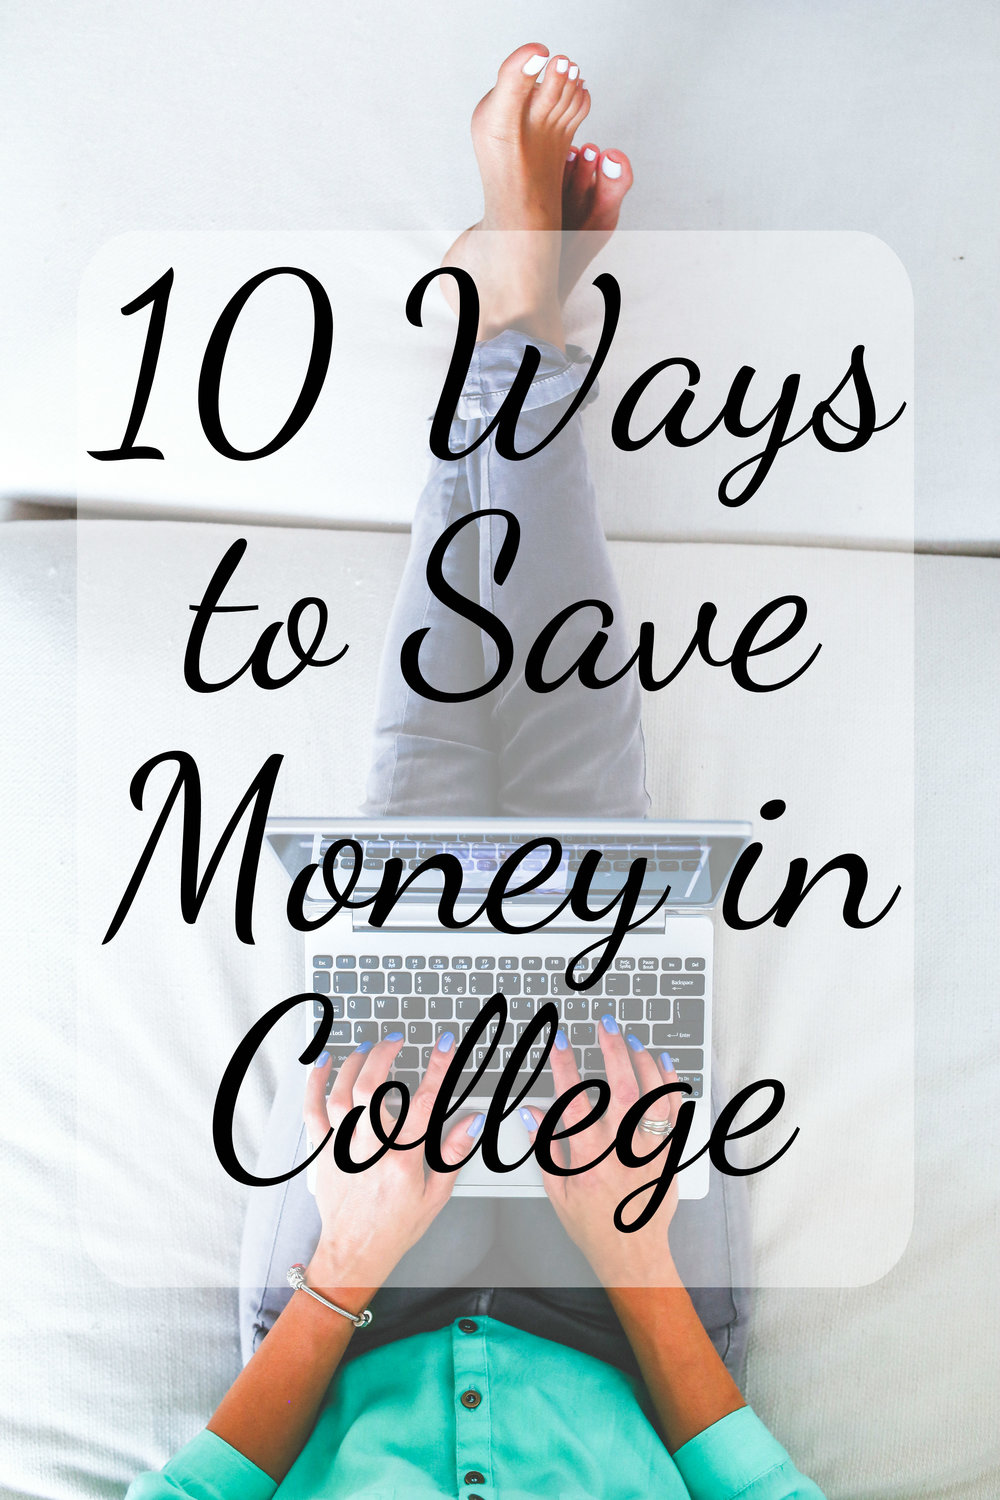 10 ways to save money in college